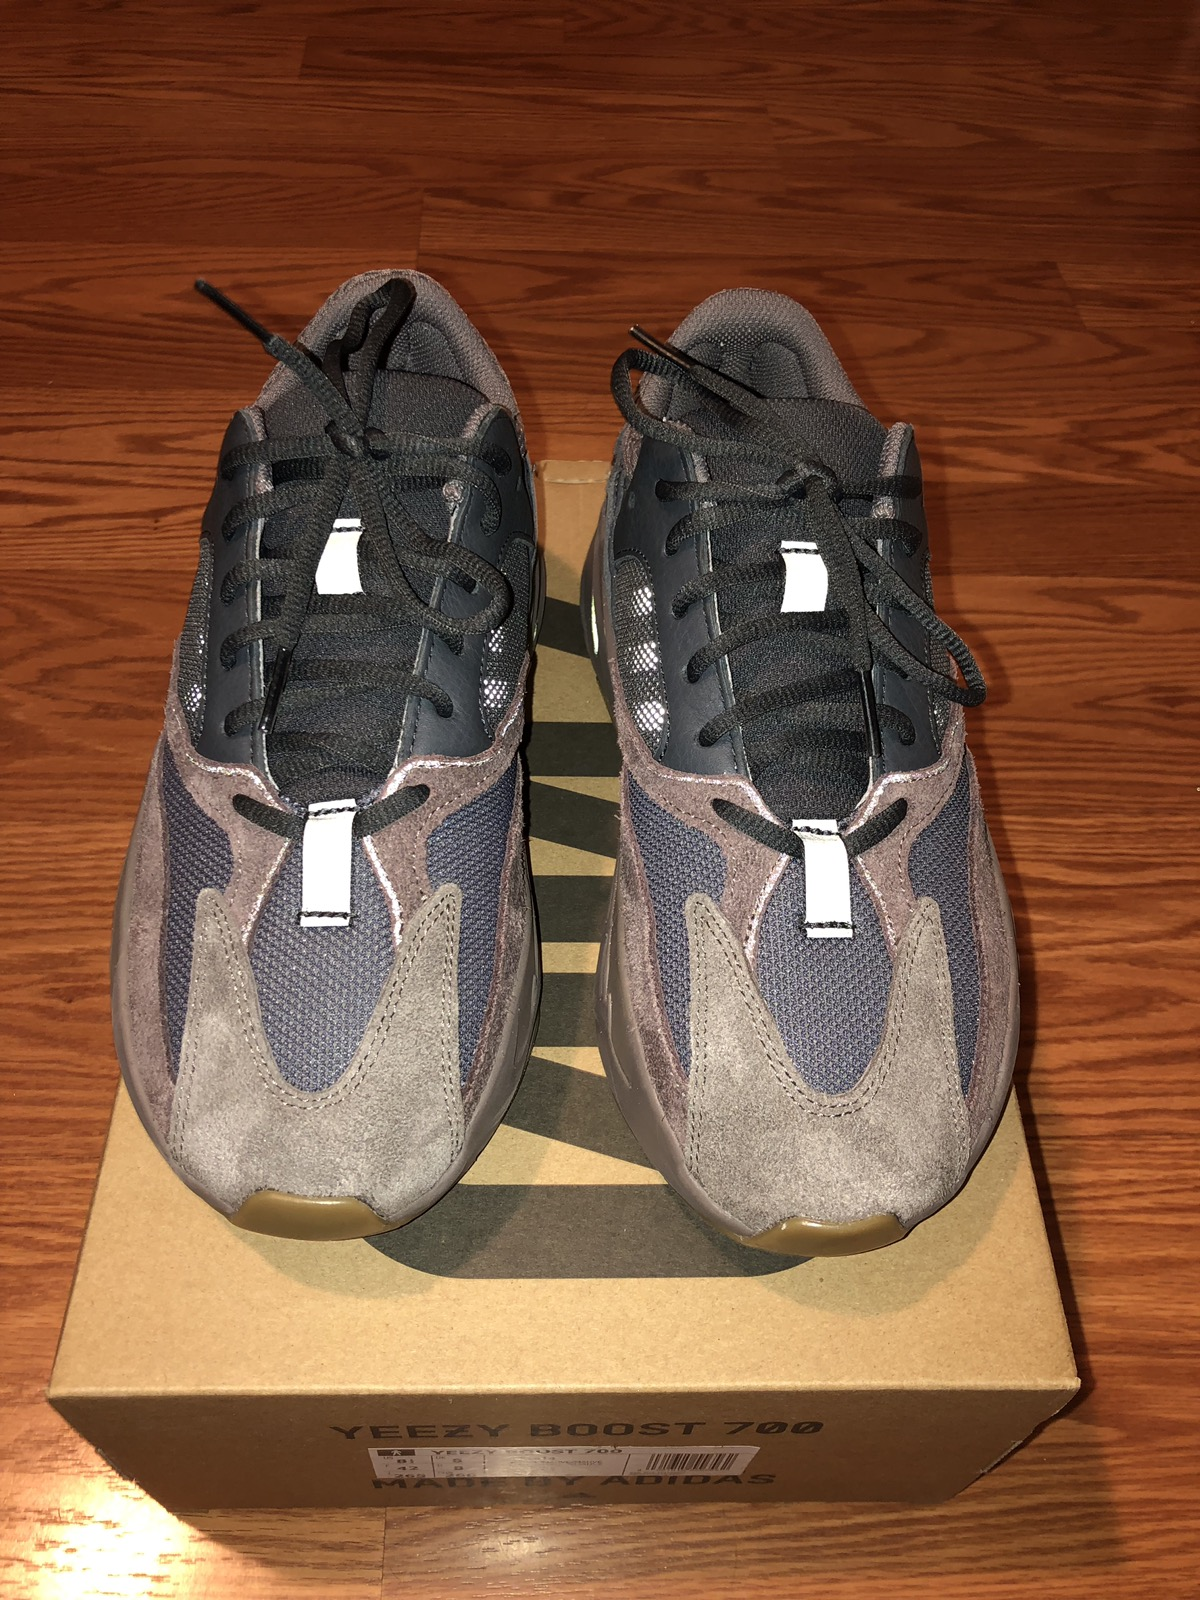 newest 42147 c7037 Yeezy Boost 700 Wave Runner Mauve